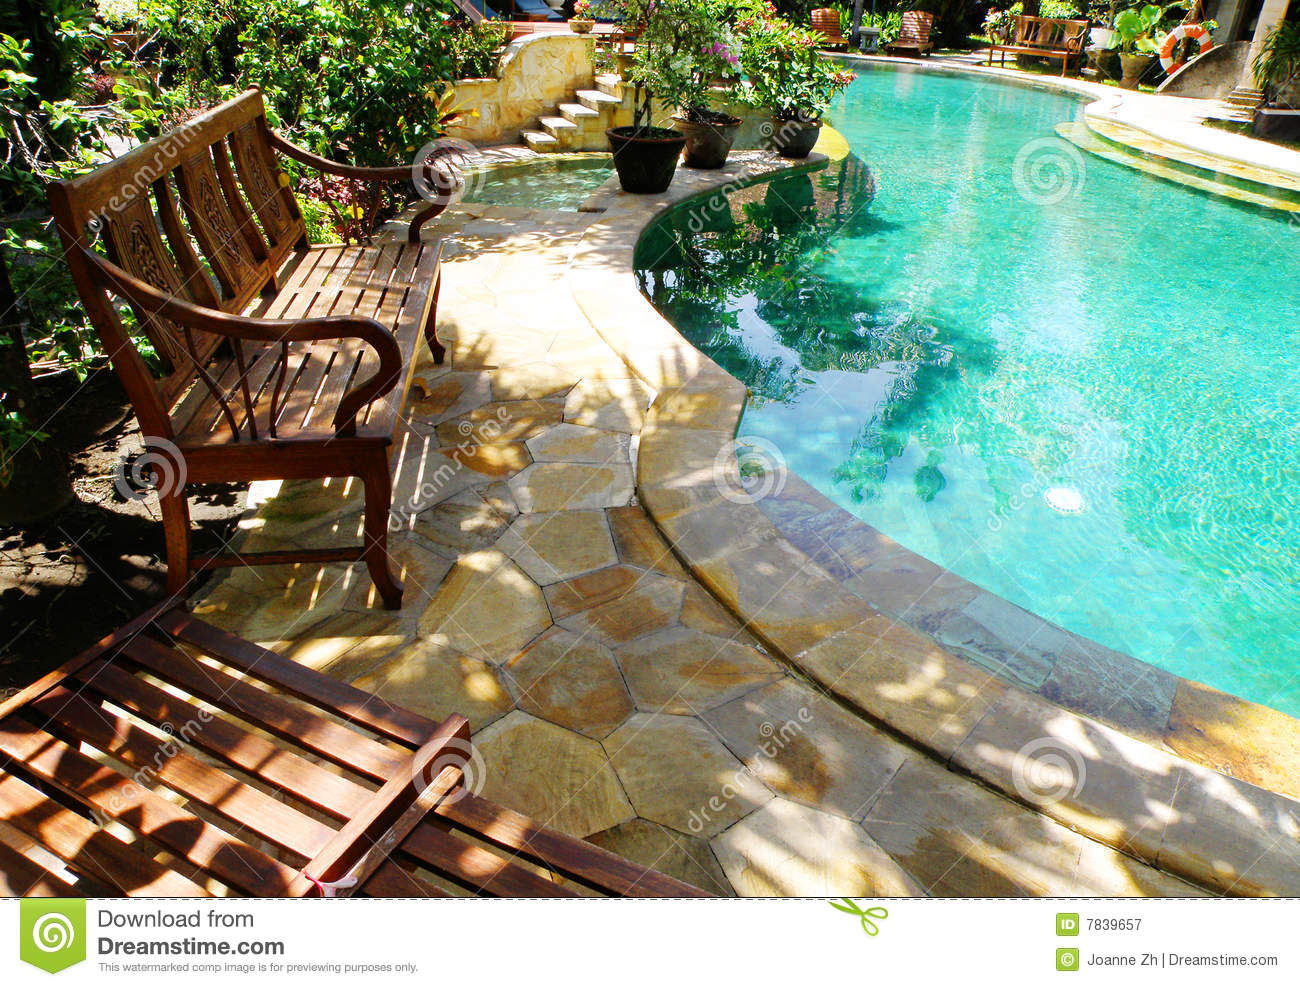 Royalty Free Stock Photography: Sunny outdoor swimming pool and patio ...